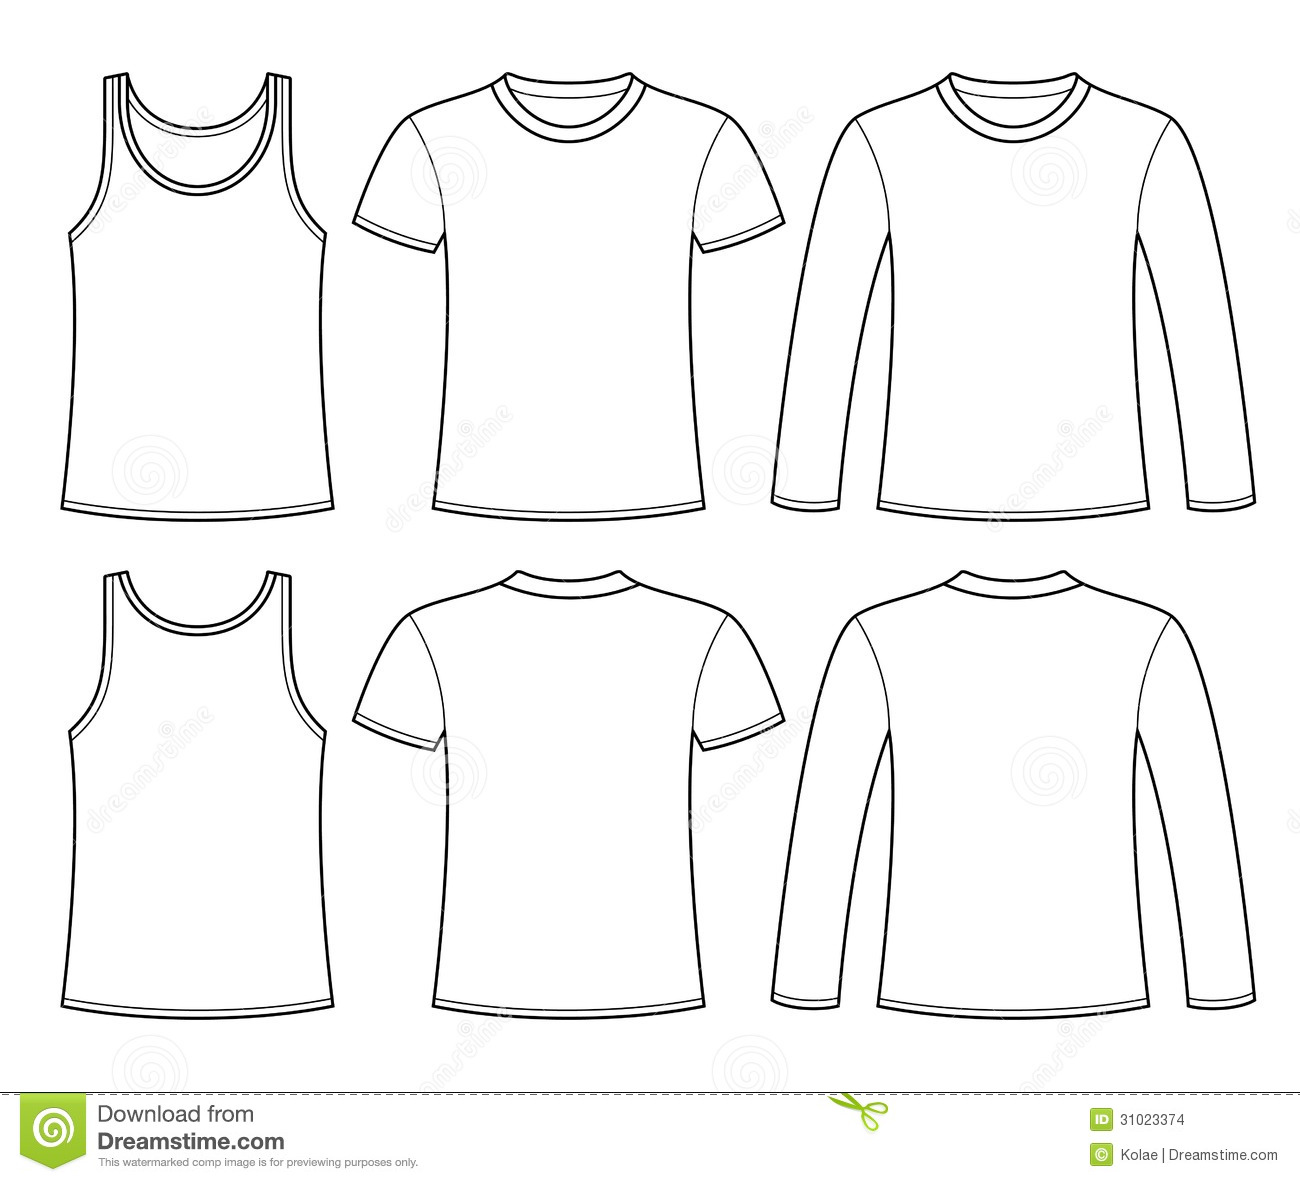 Shirt Templates For Kids To Design Their Own Clothes  Design